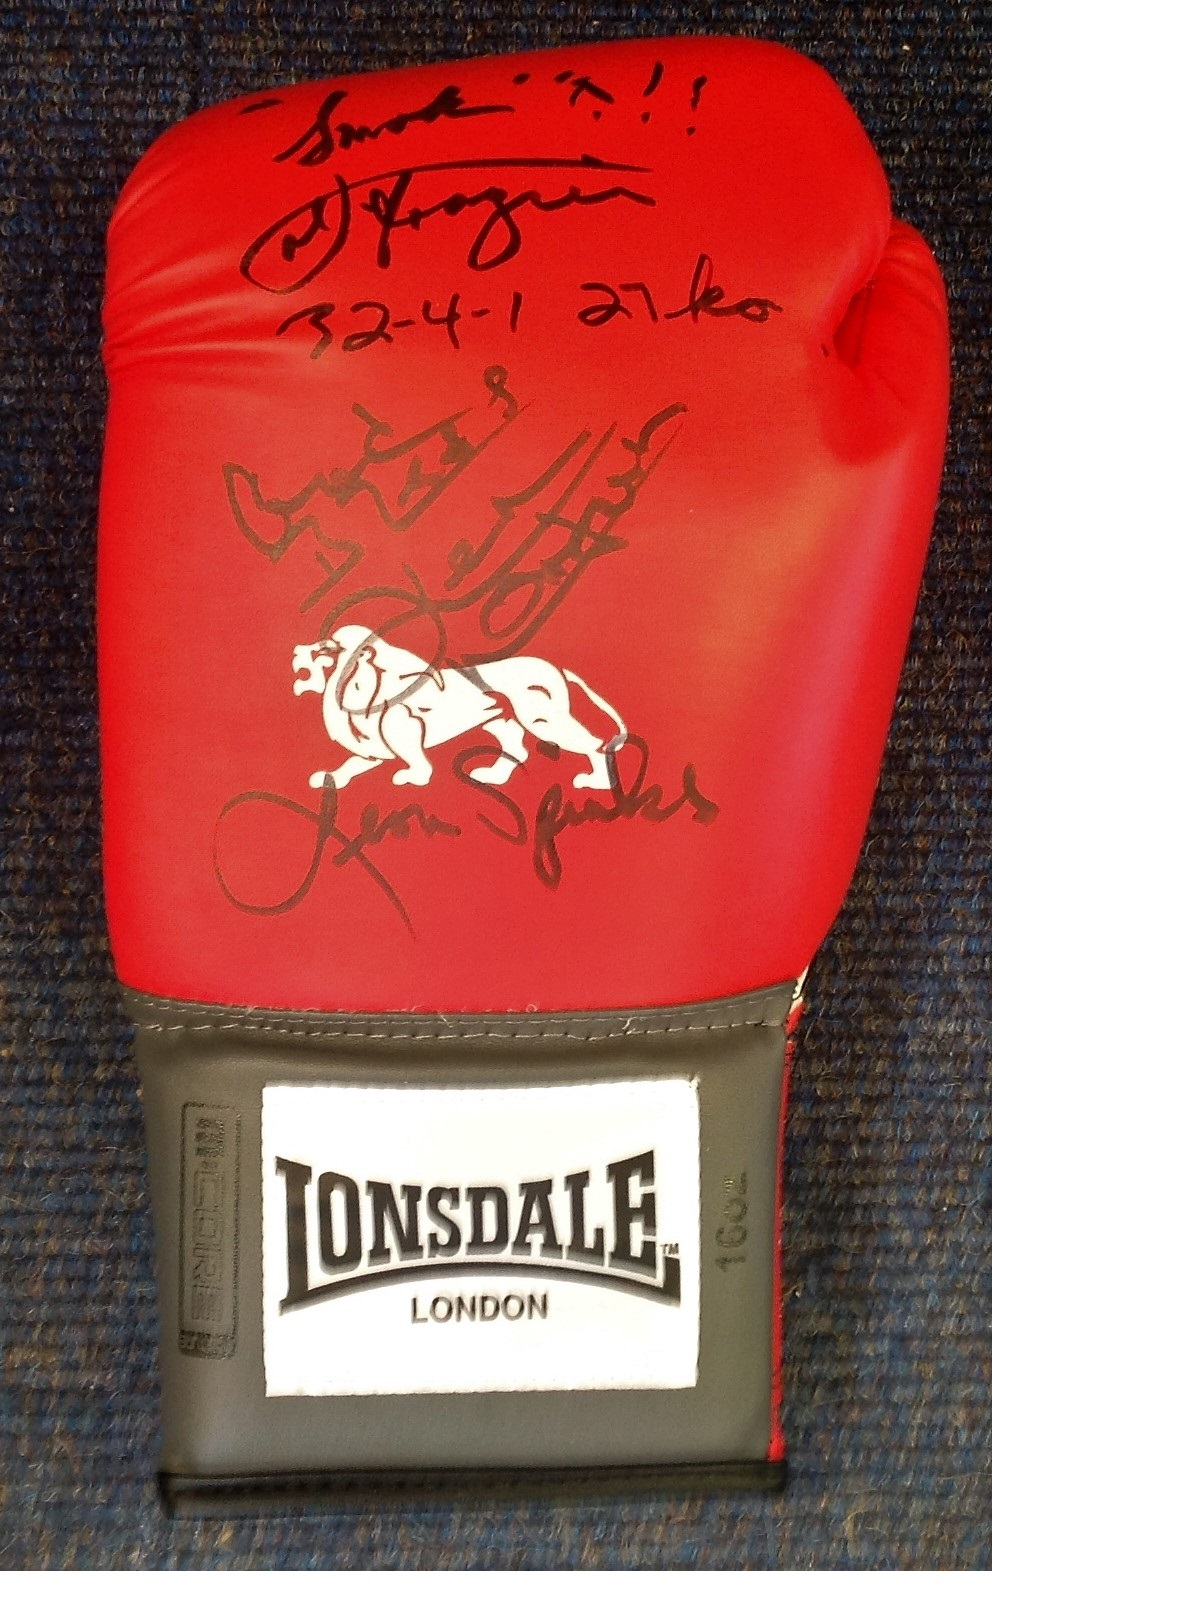 Lot 39 - Boxing Lonsdale Glove signed by three heavyweight champions Smokin Joe Frazier, Ken Norton and